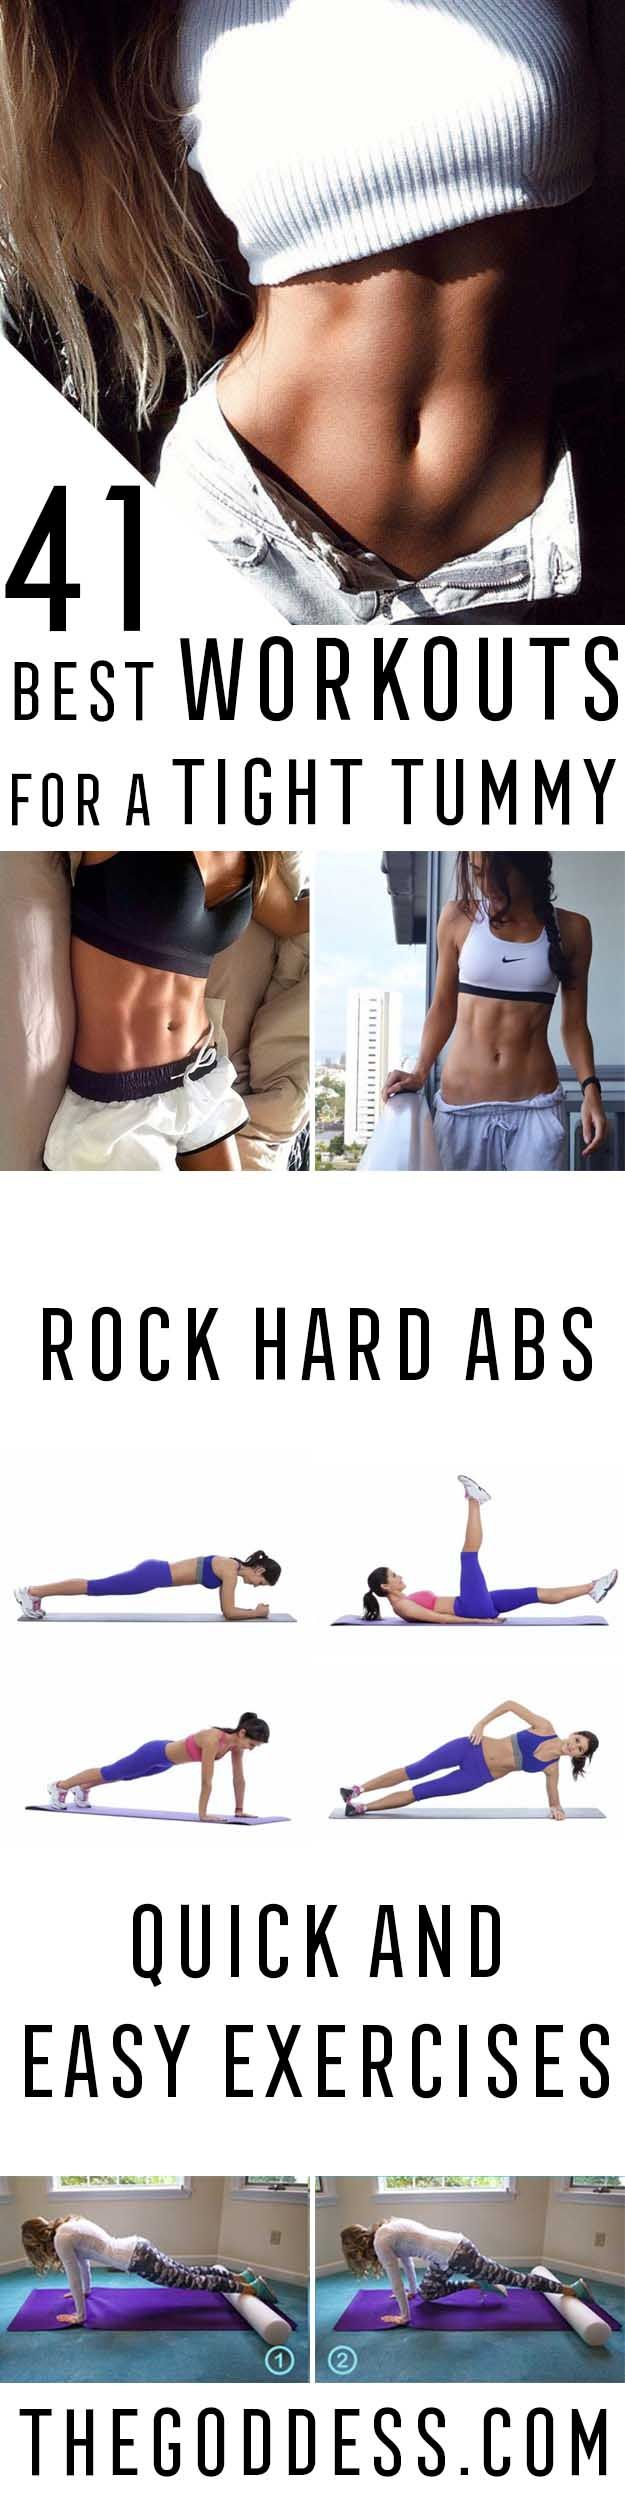 Best Workouts for a Tight Tummy